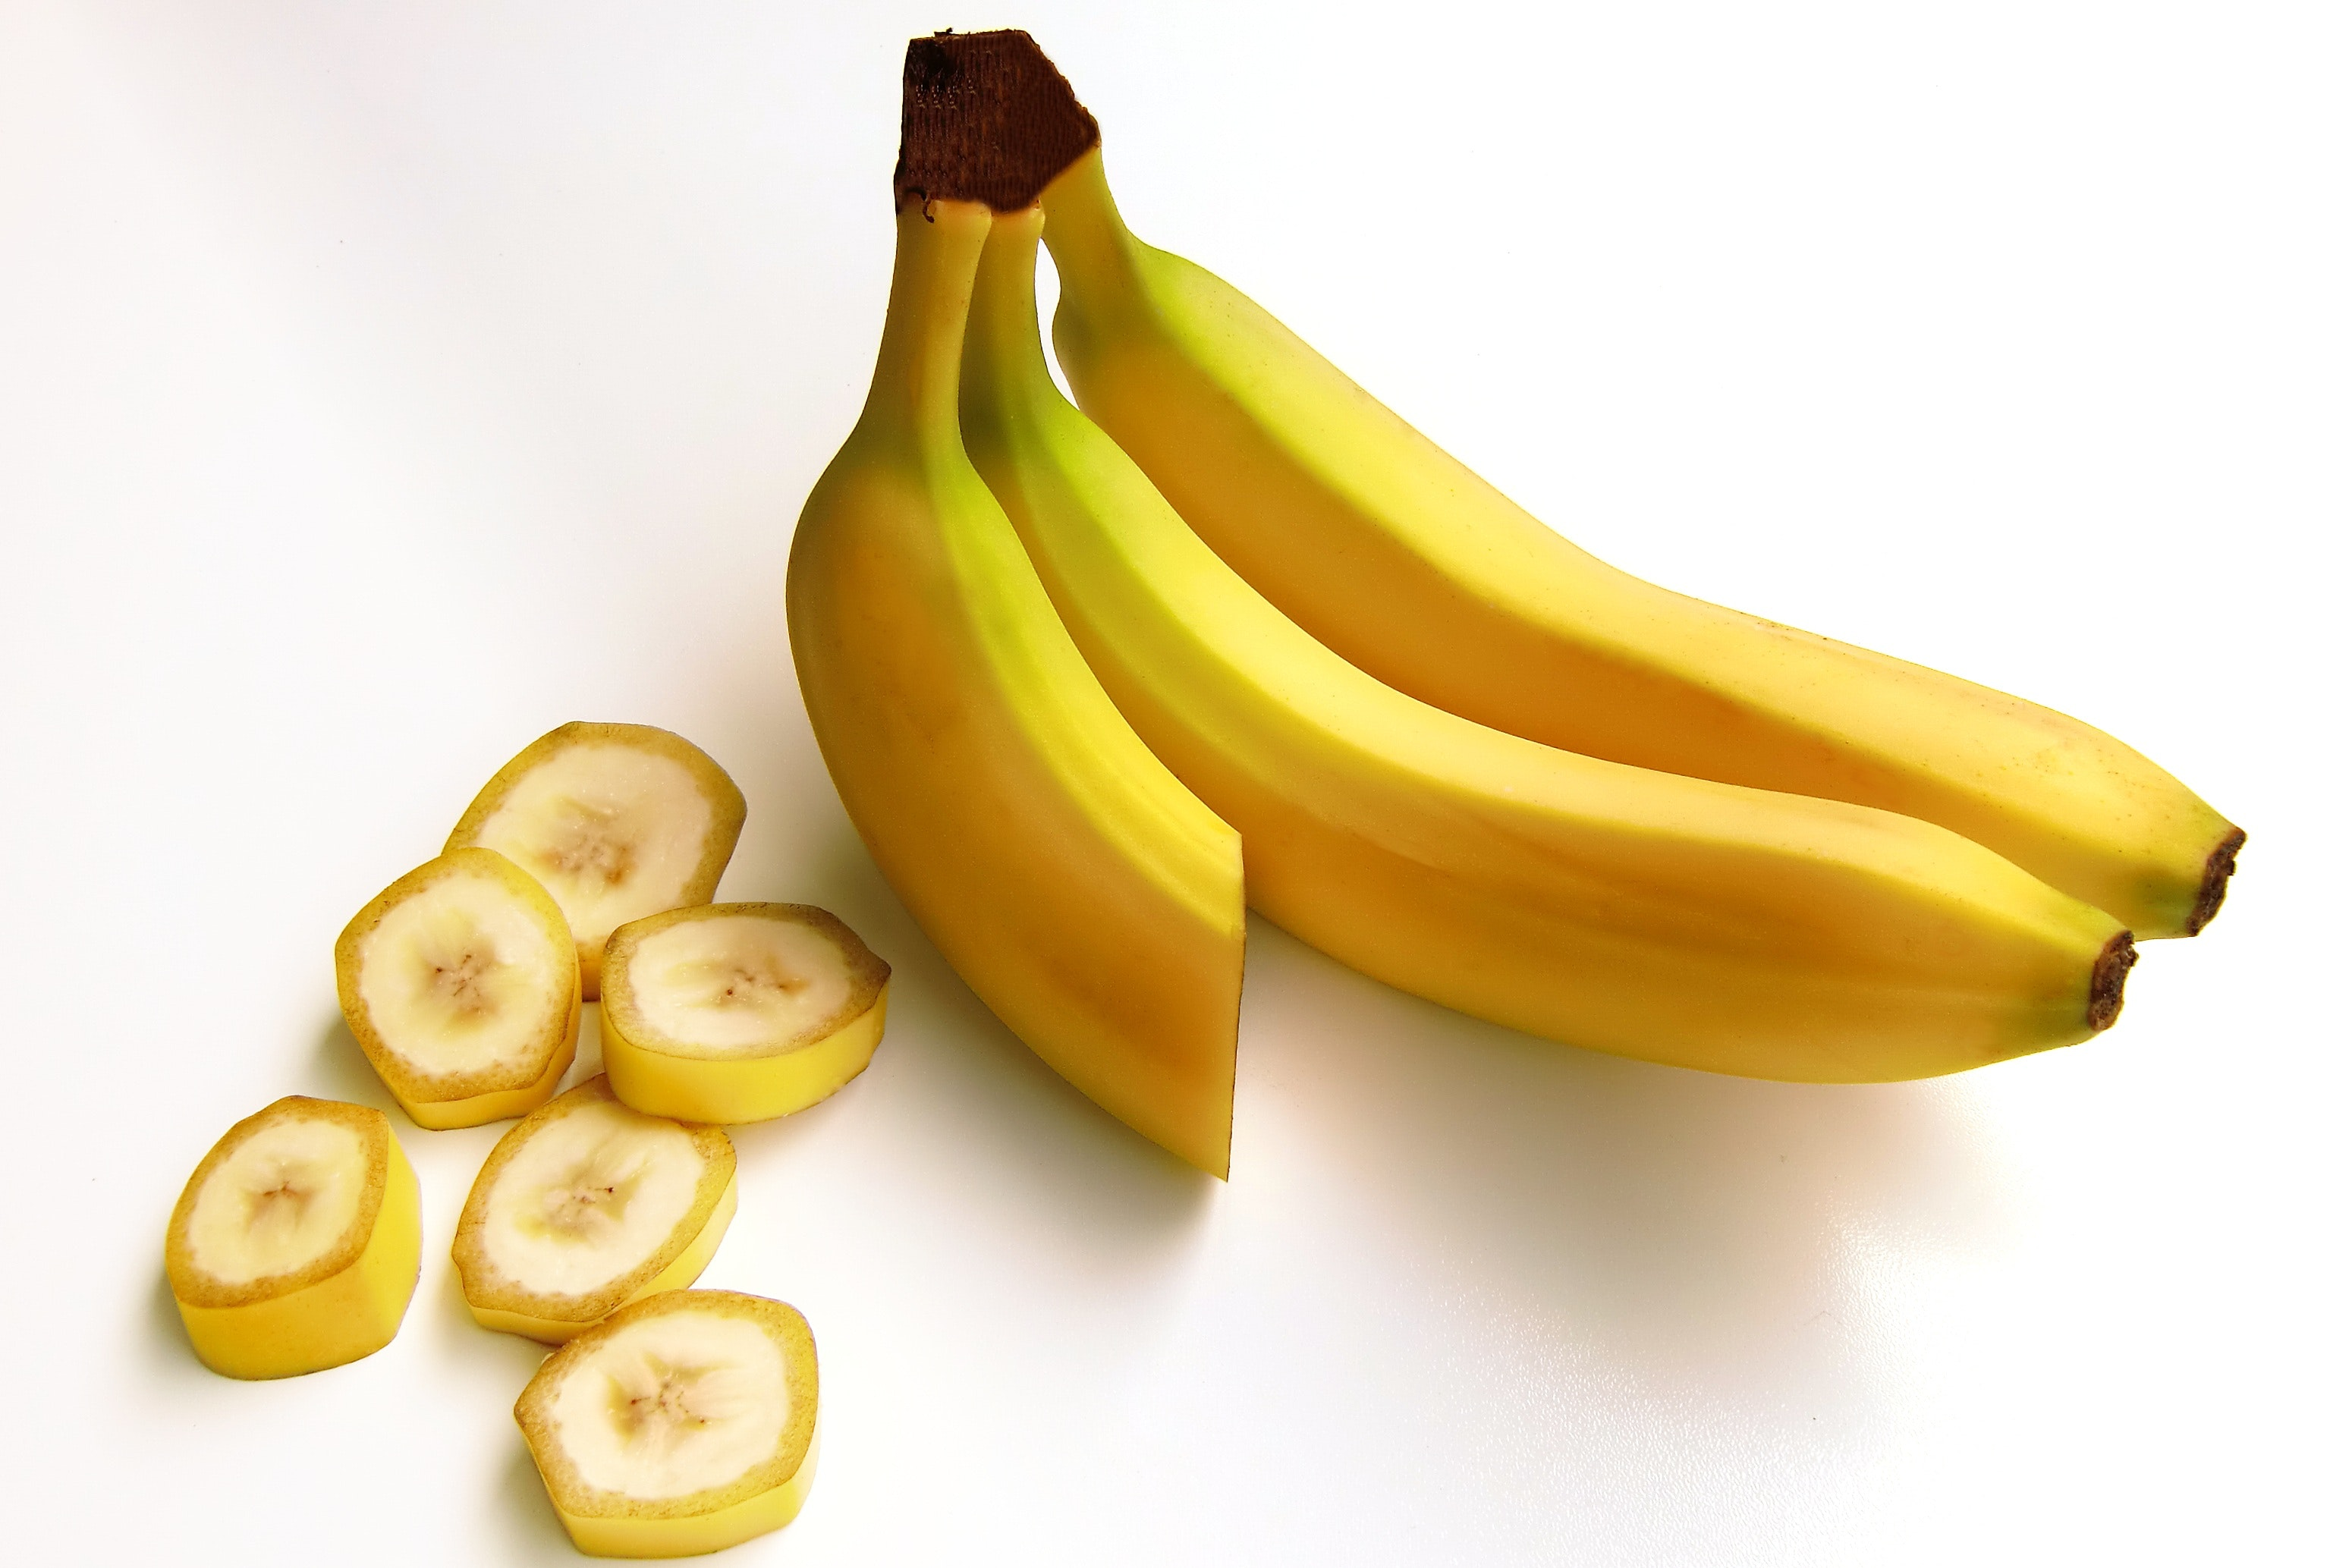 banana bodybuilding